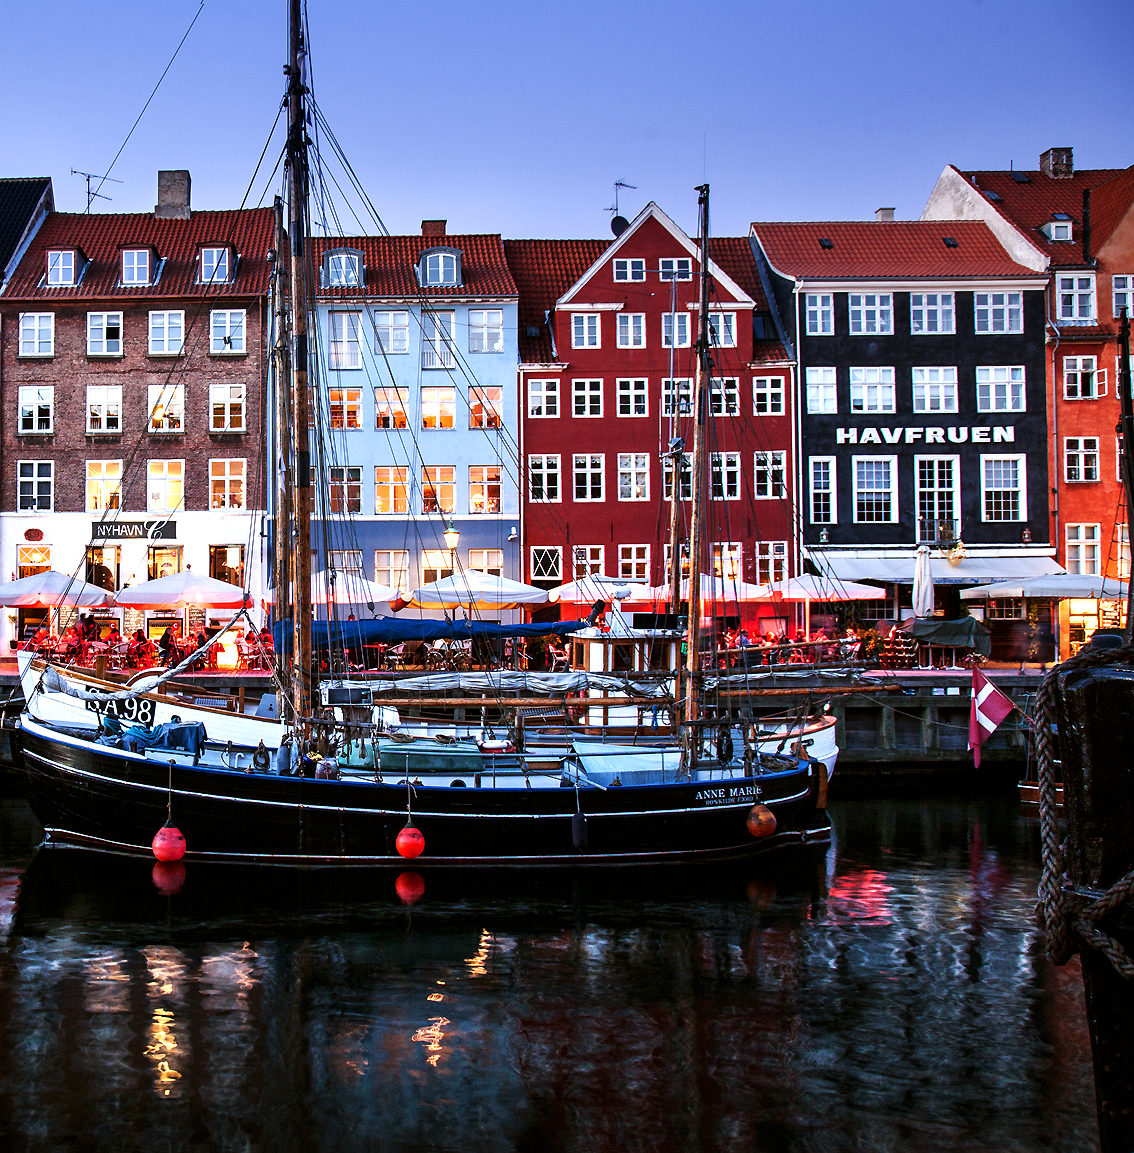 images/stories/varie_2018/Hygge_Nyhavn02_PhKimWyon.jpg